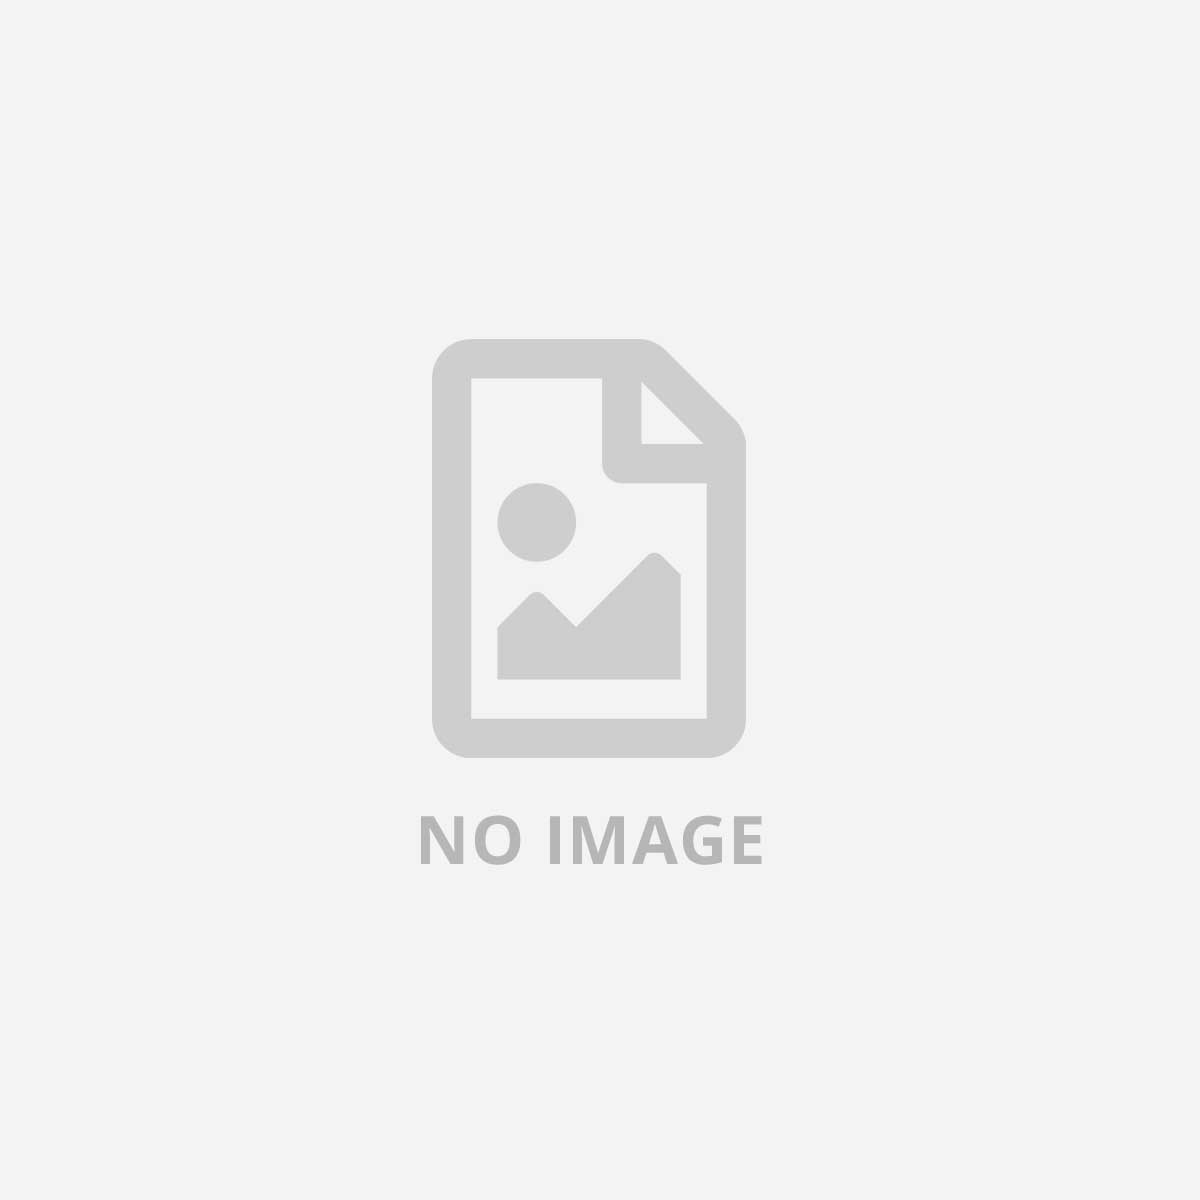 JF SOUND CUFIT KIA SPORTAGE 3 ANDROID 4CORE